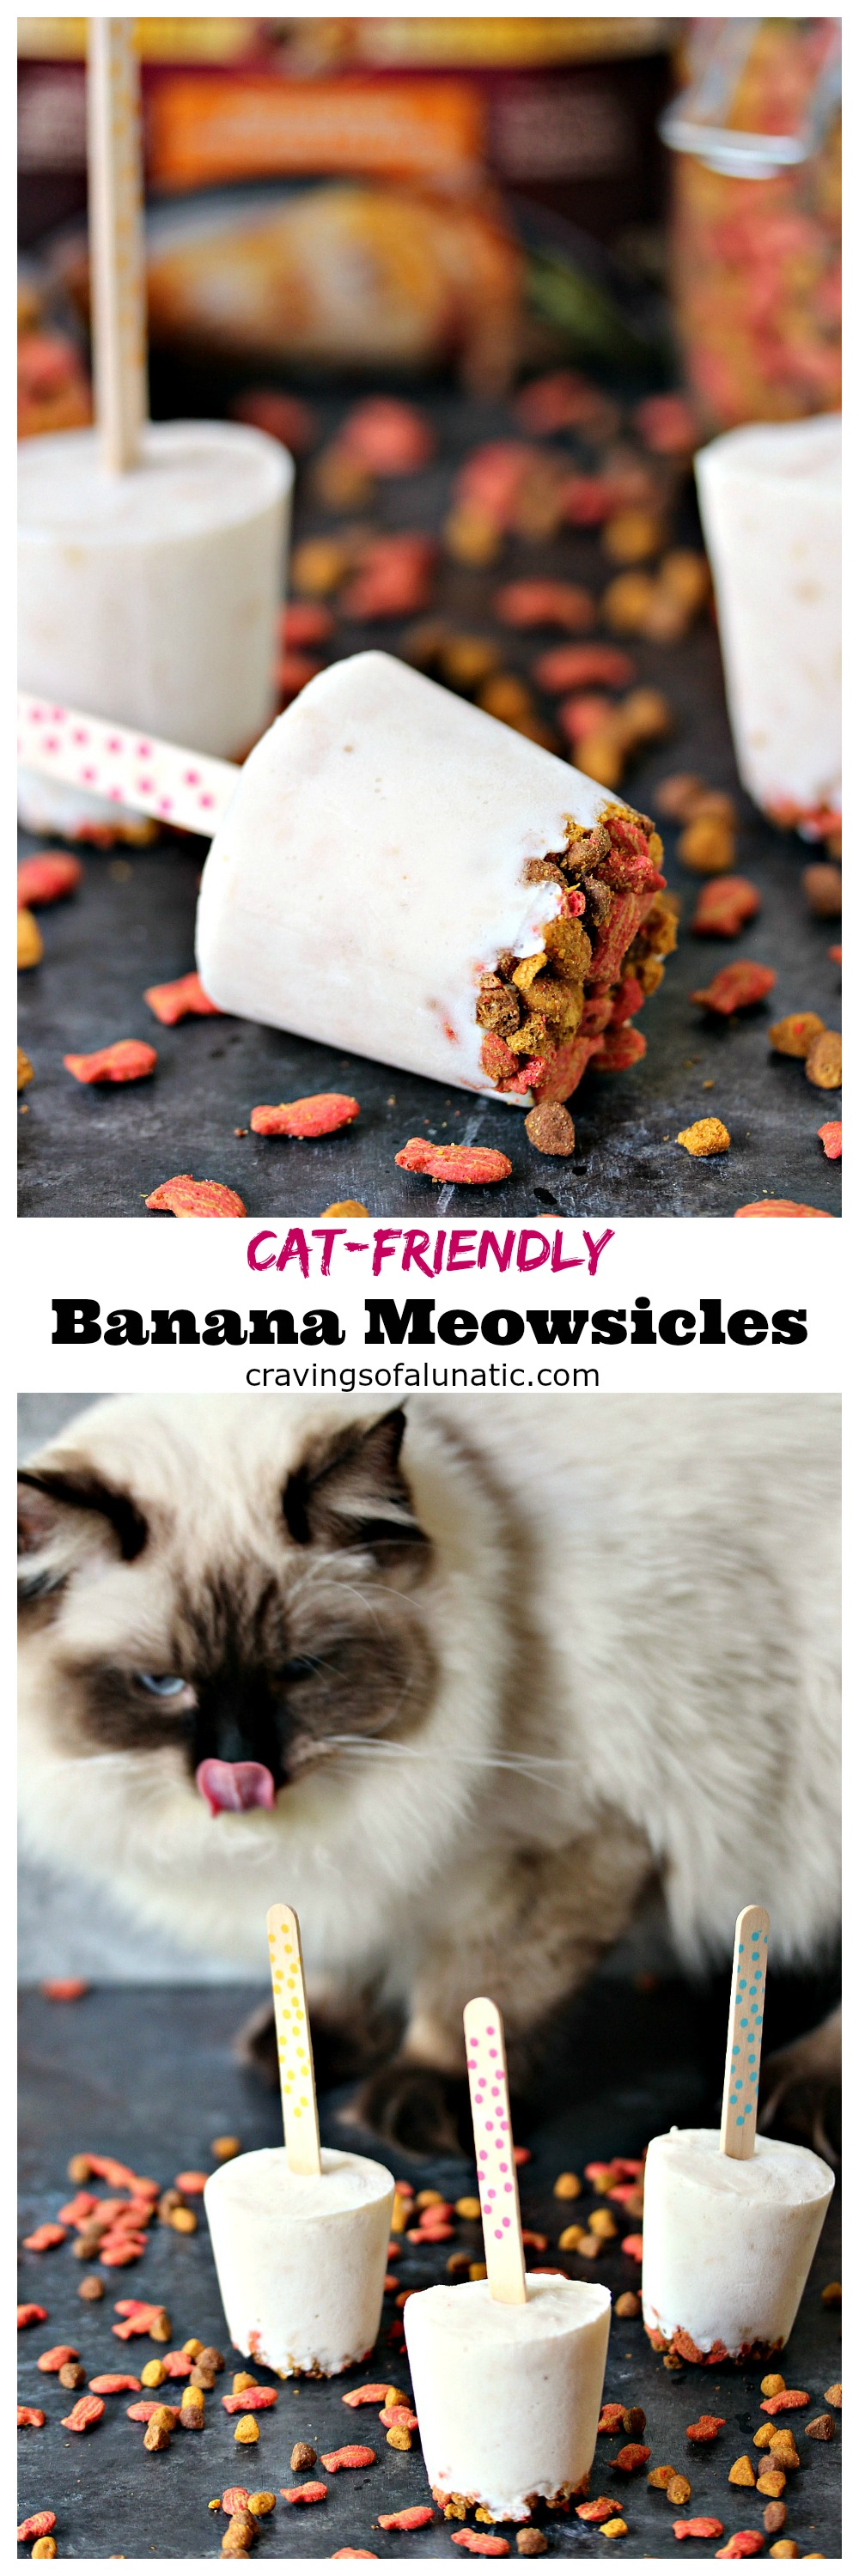 Cat-Friendly Banana Meowsicles. These refreshingpopsiclesareperfect for summer, and will let your cat cool off in style. Whip up a batch of these super easy 3 ingredient Cat-Friendly Banana Meowsicles today!